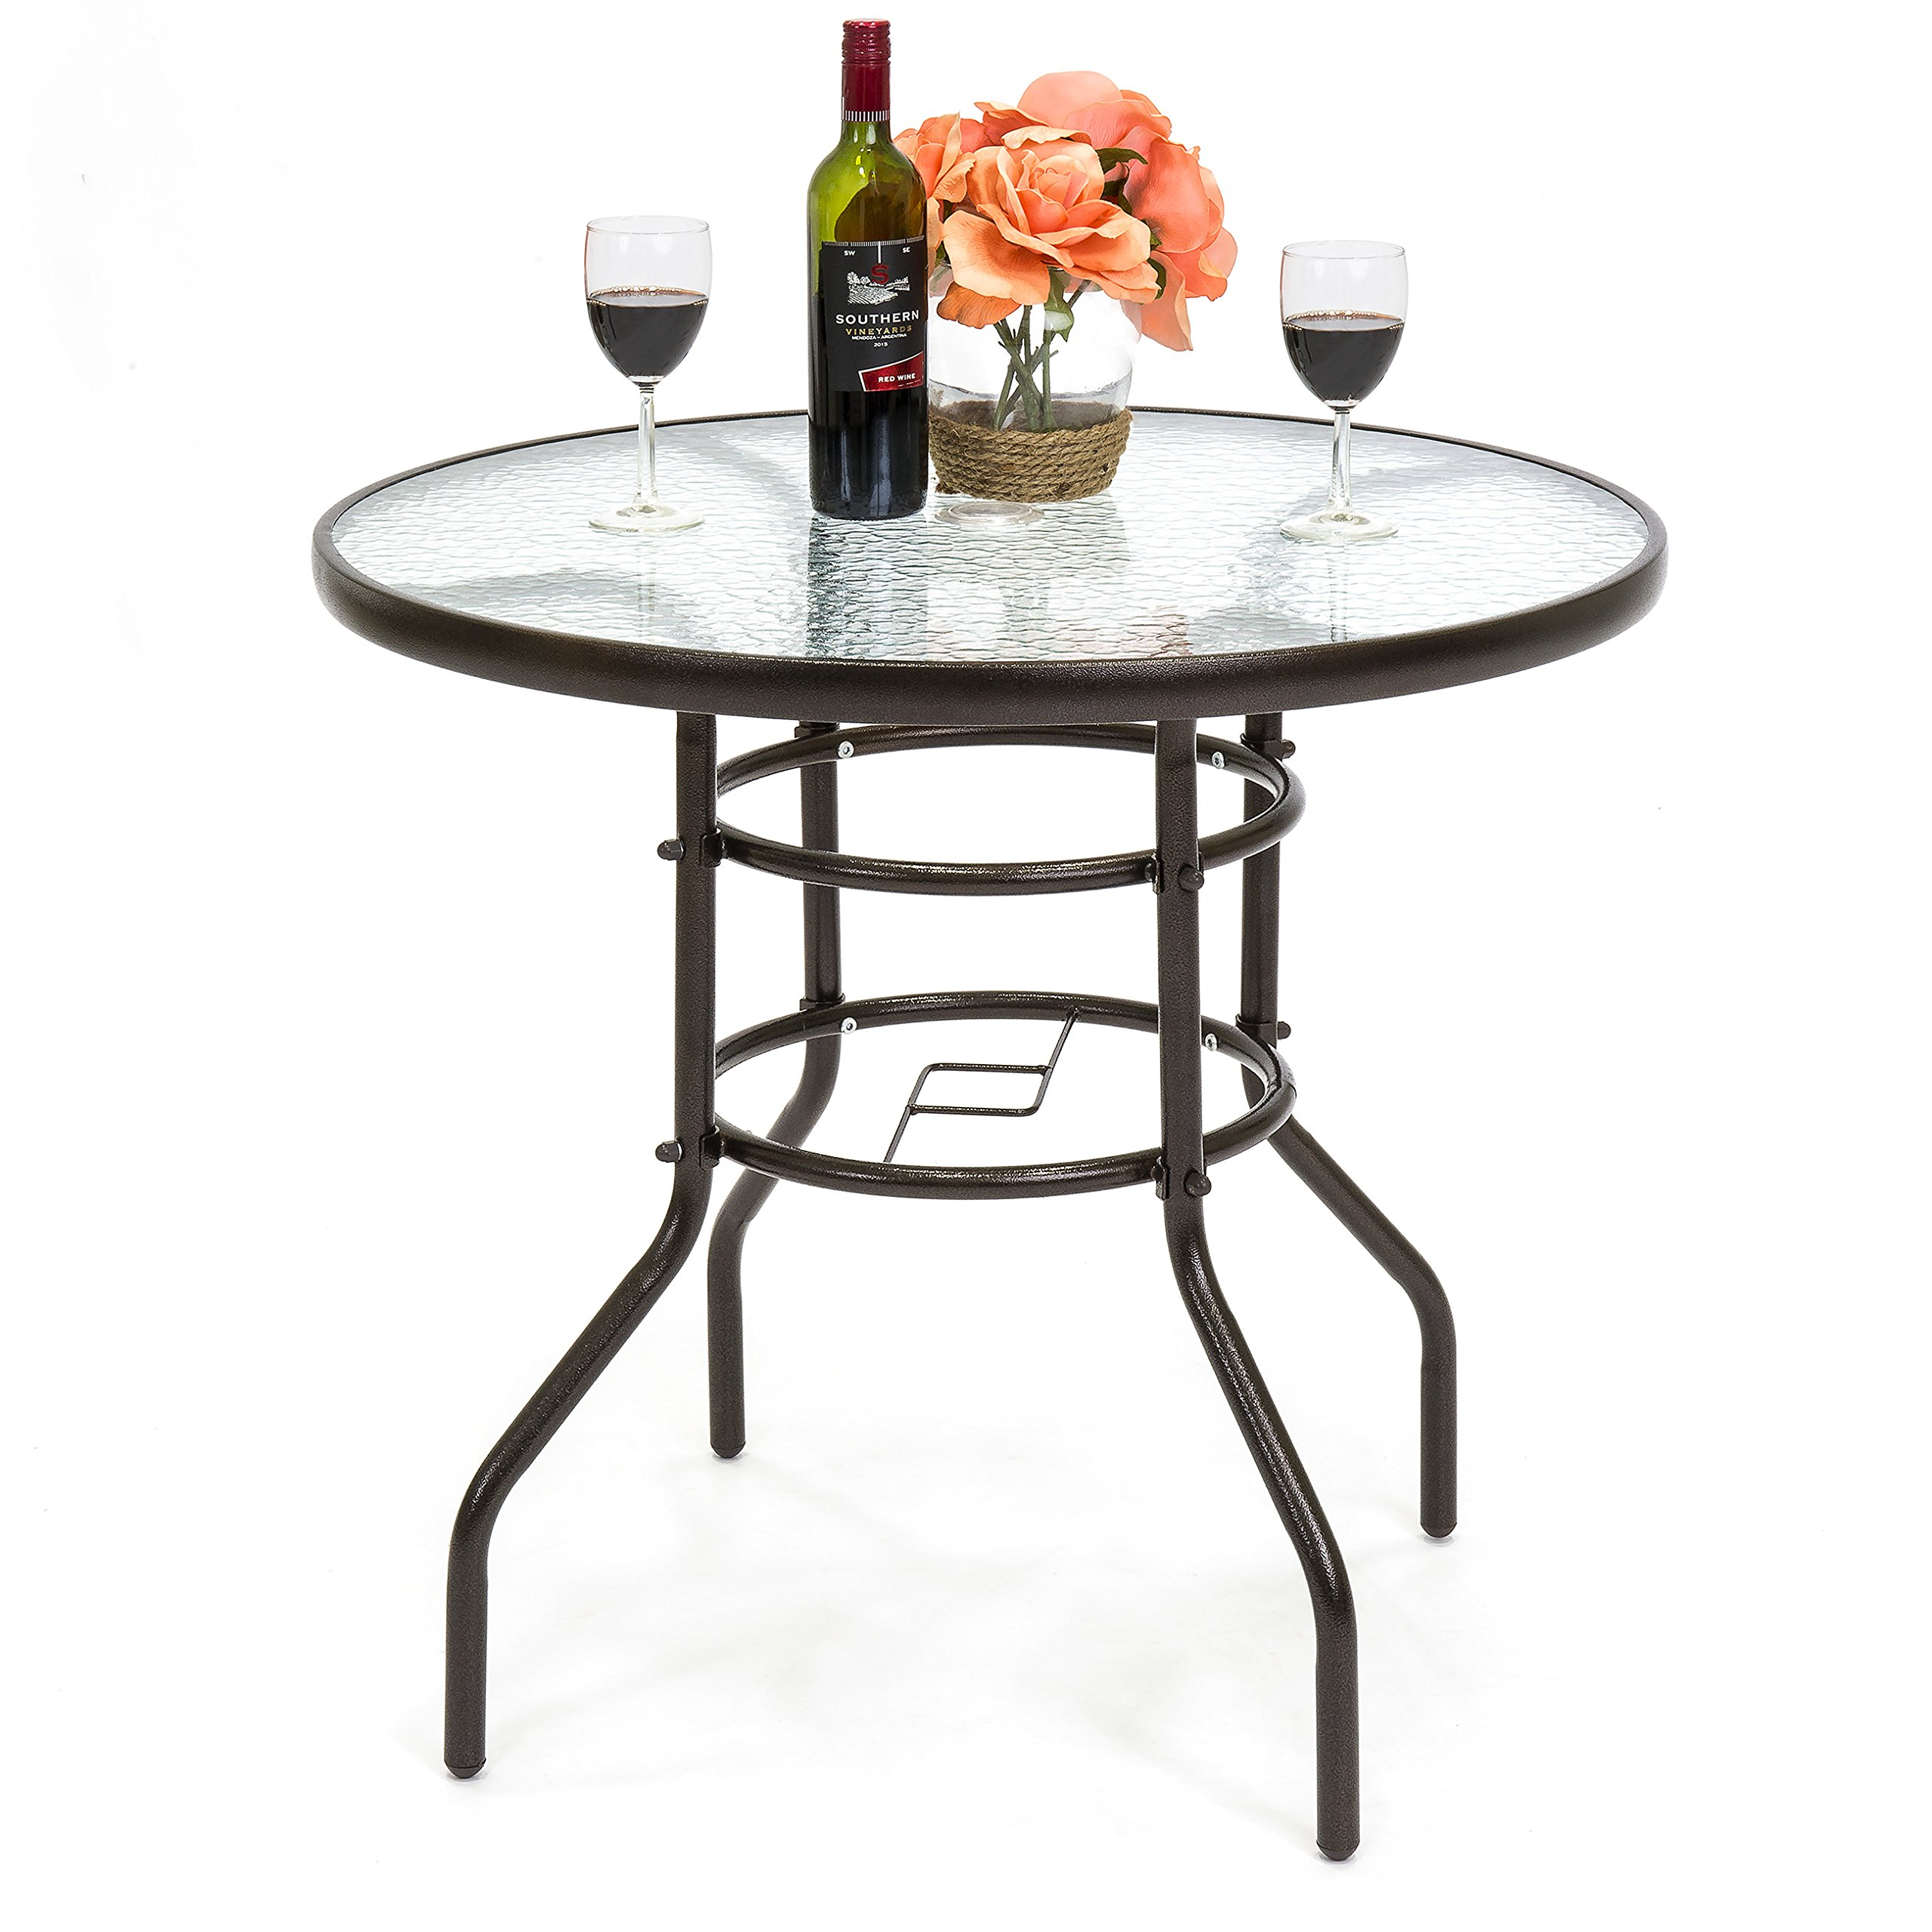 Best Choice Products 32in Round TemperedGlass Patio Dining Bistro Table w/Umbrella Stand -Dark Brown